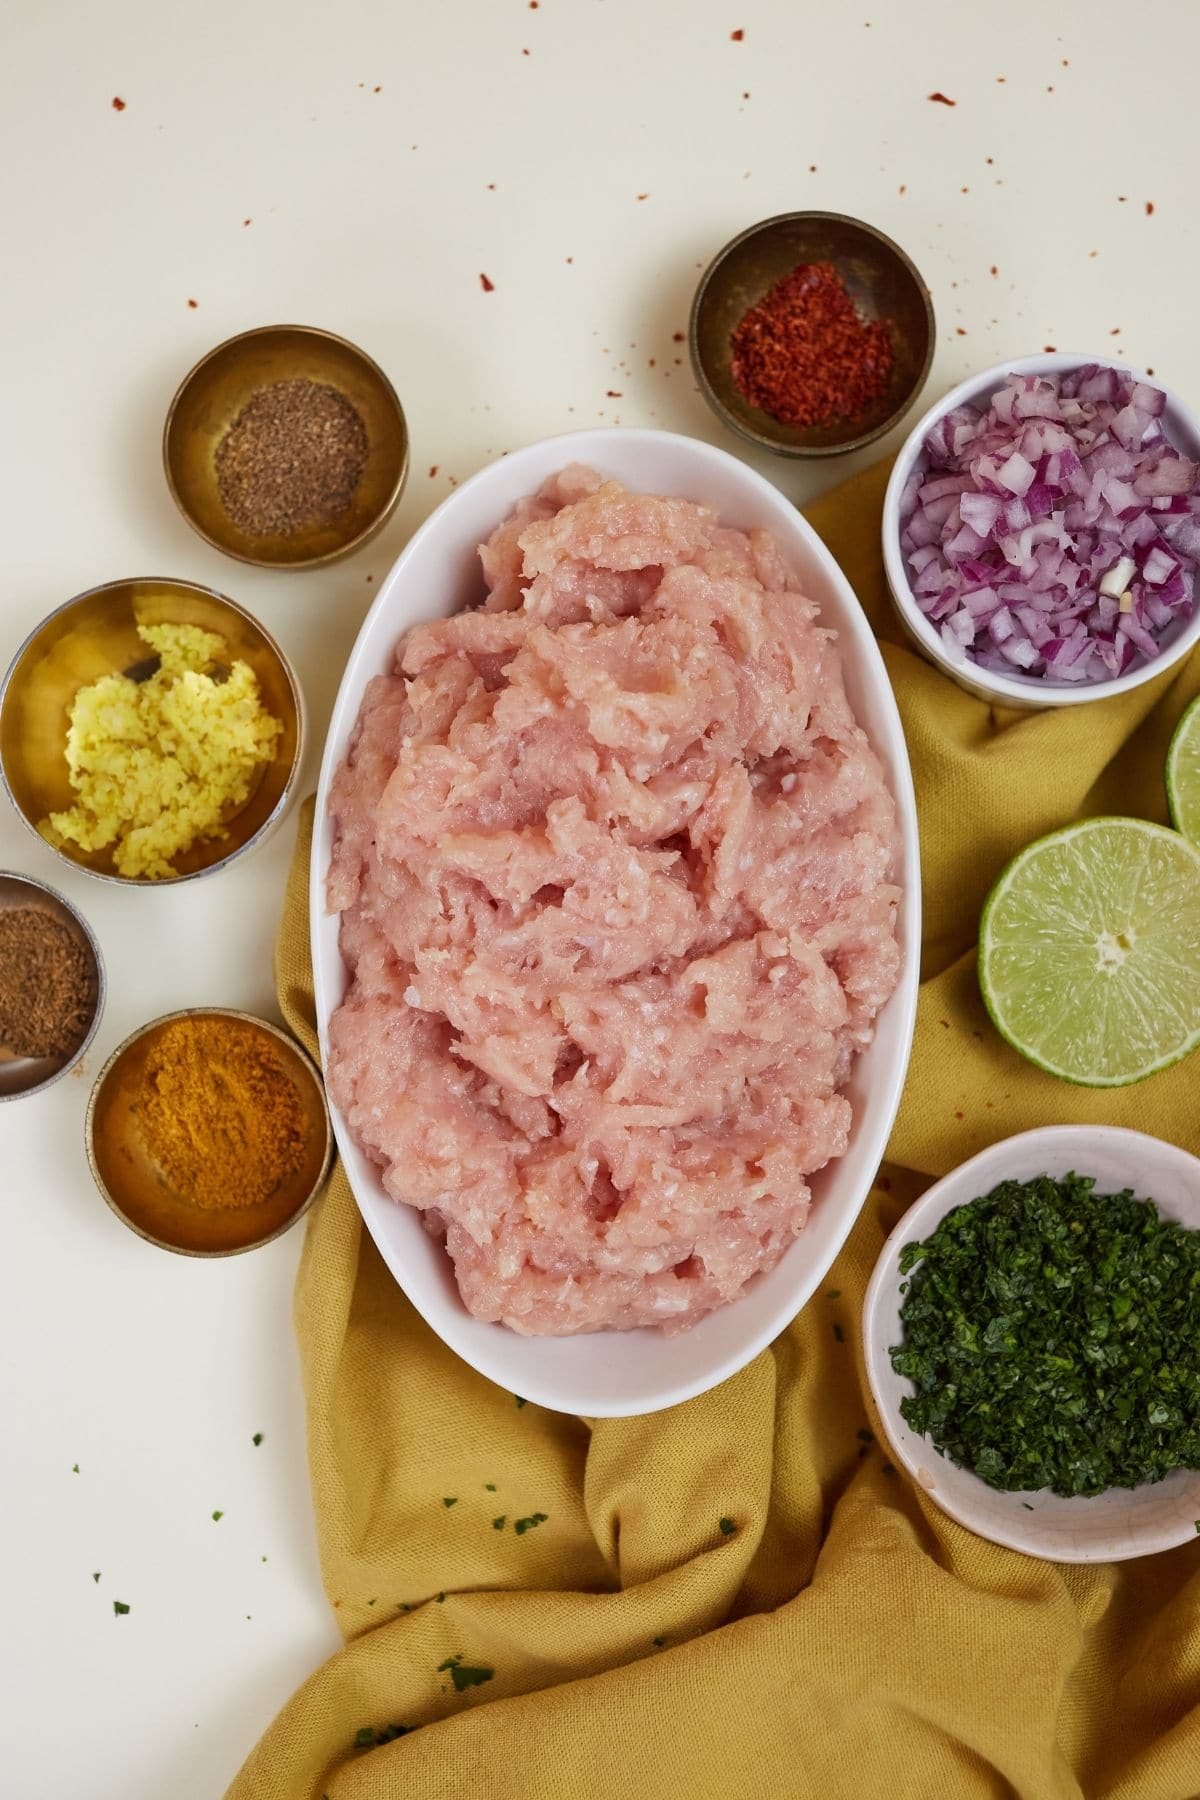 Ingredients for baked chicken samosa